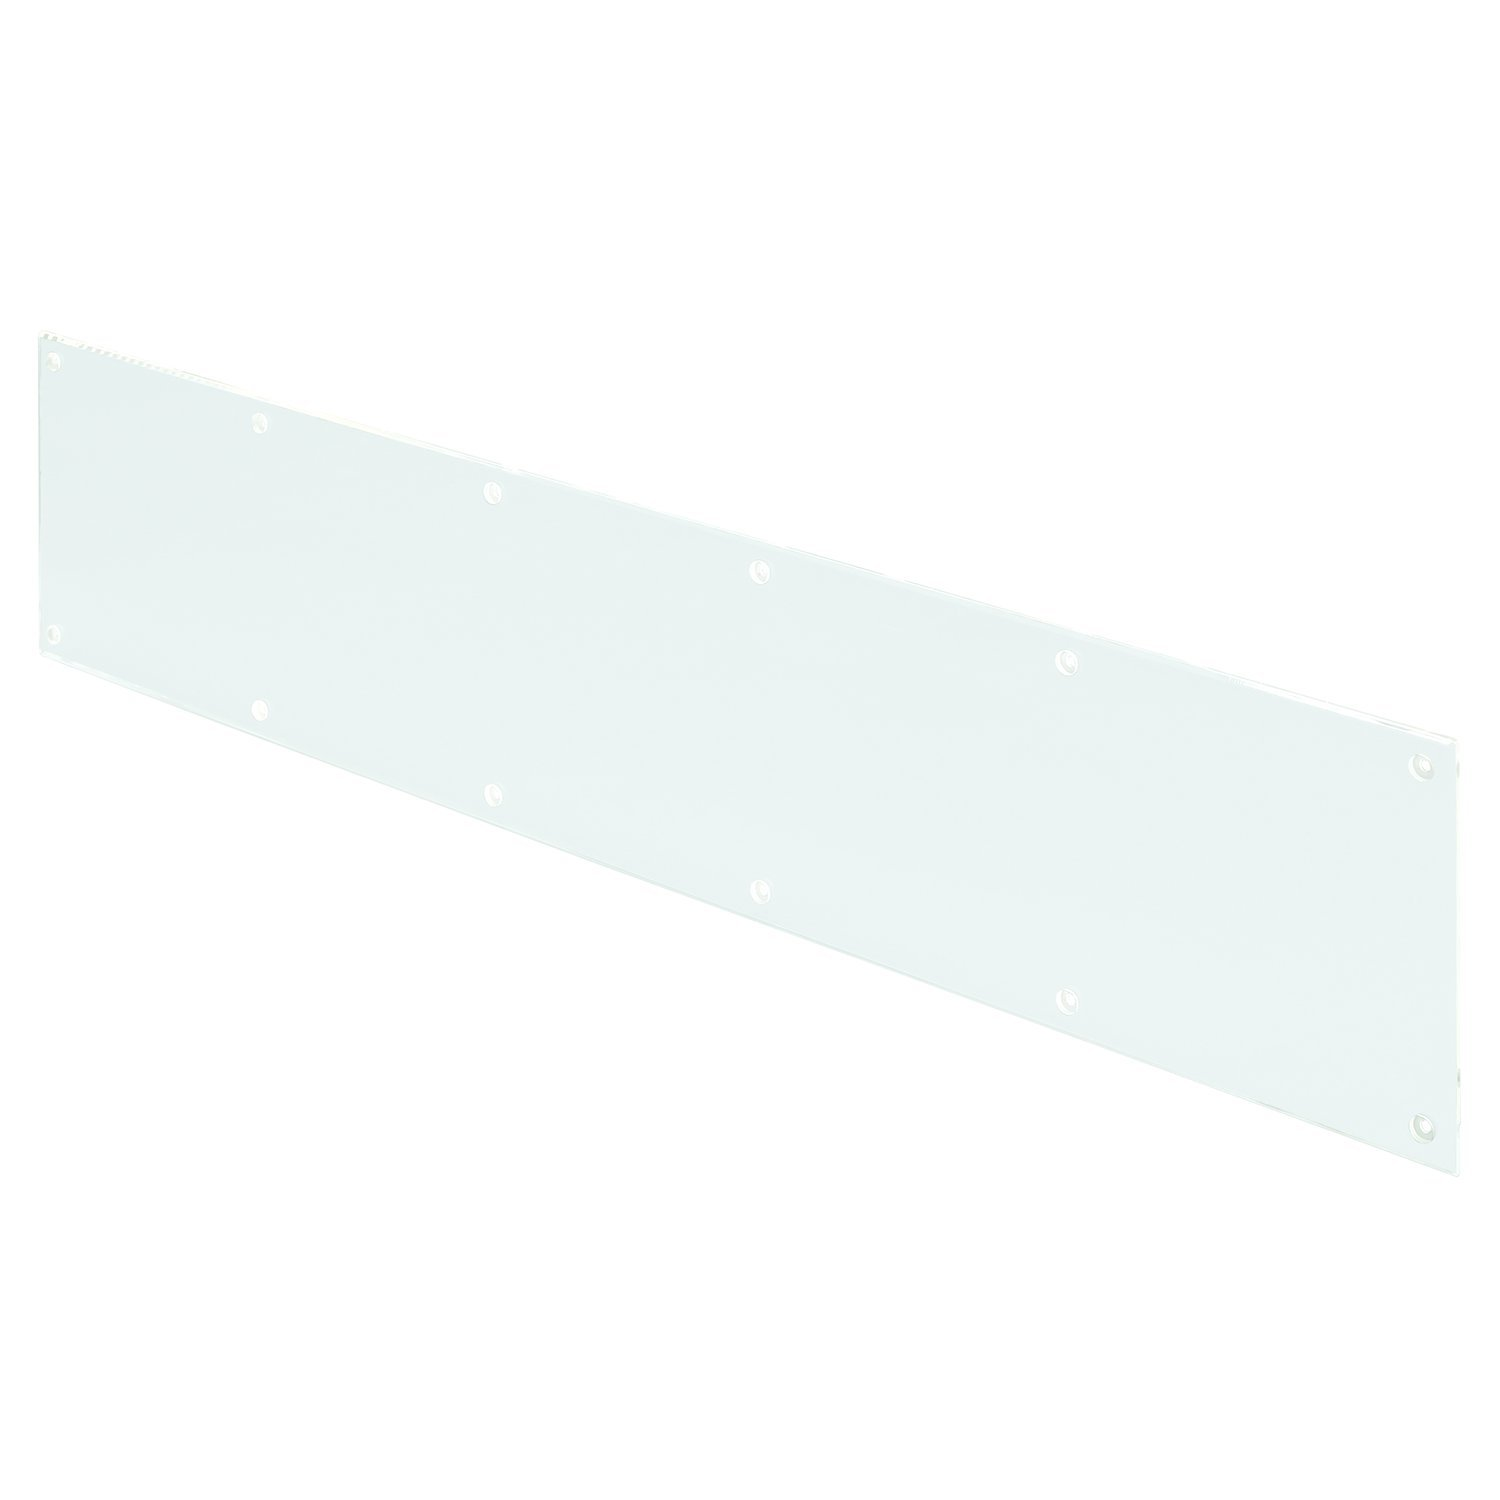 Prime-Line Products J 4926 Kick Plate, 3/16 in. x 34 in. x 8 in, Acrylic, Clear/Transparent, Smooth Finish, by PRIME-LINE (Image #1)